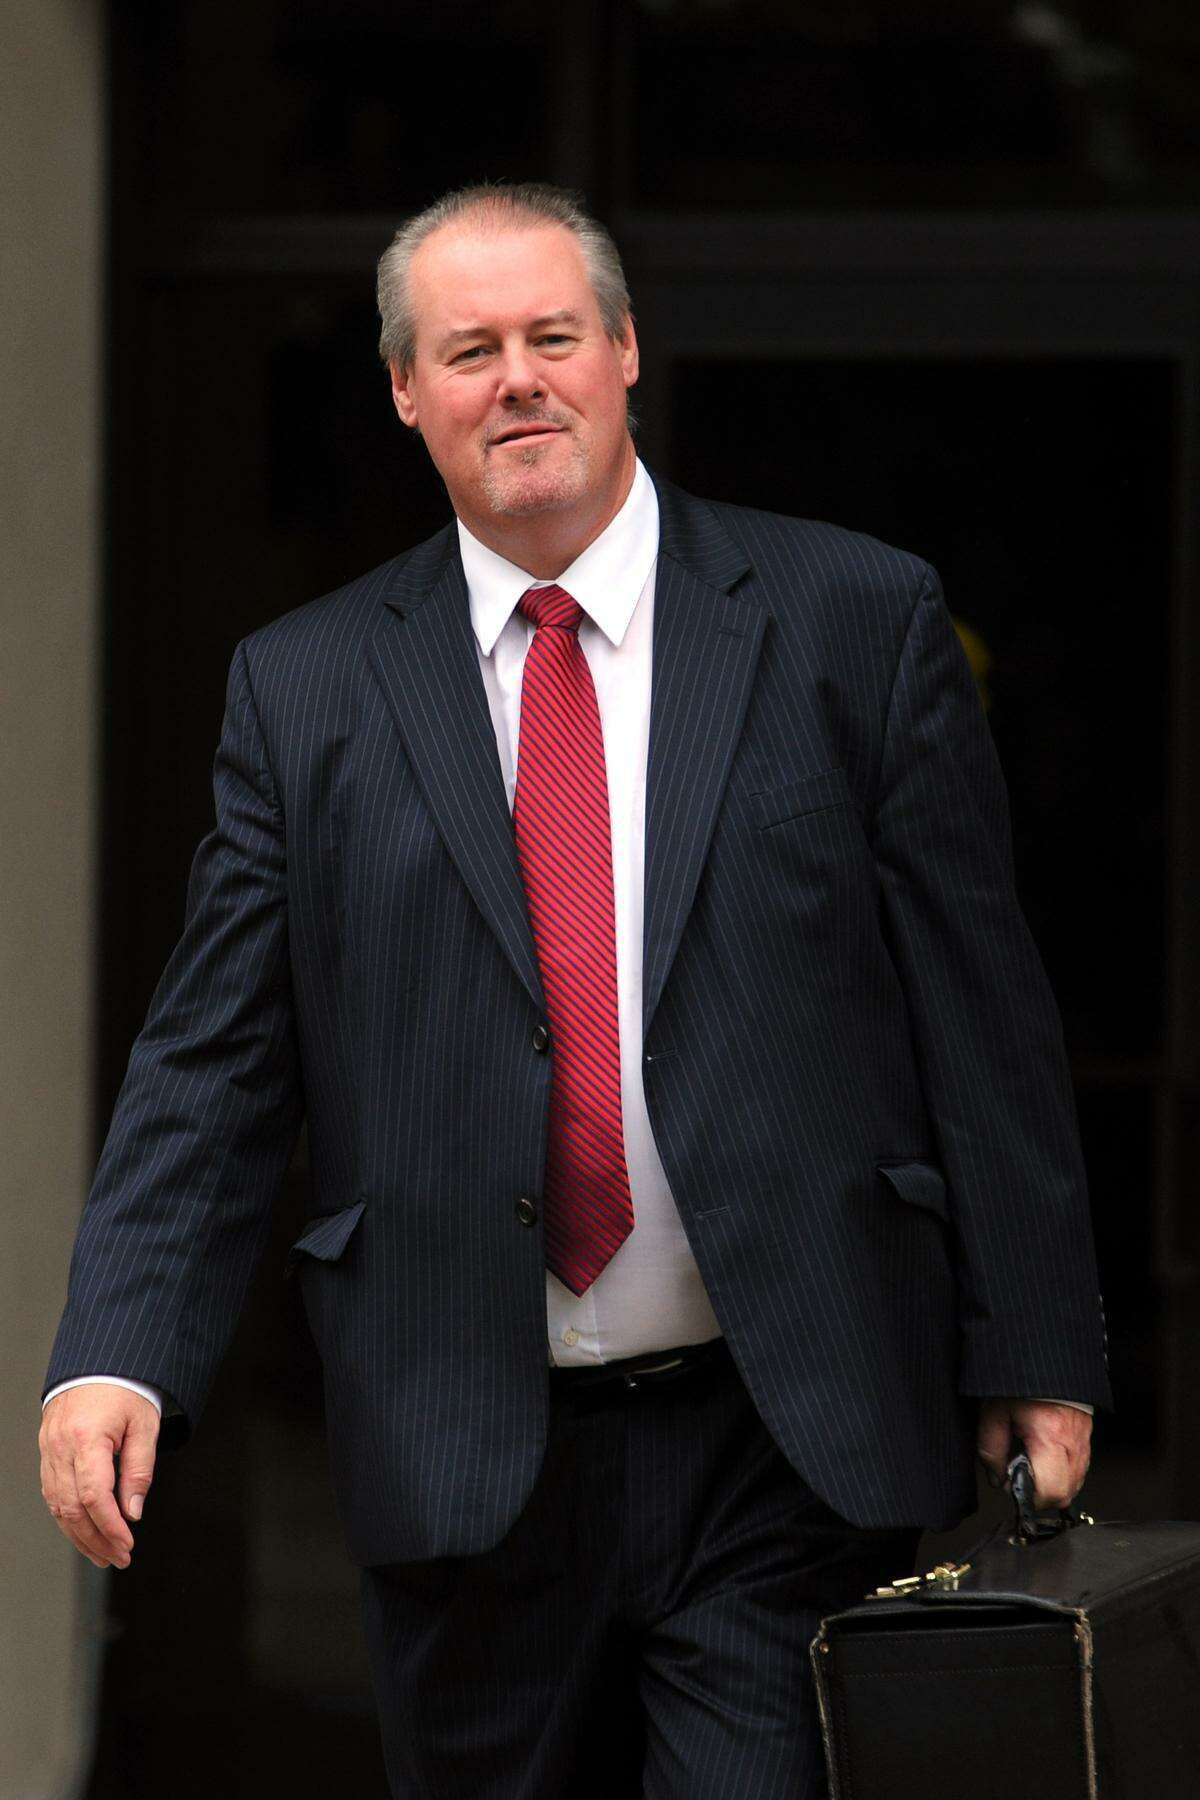 Attorney Edward Gavin leaves the Federal Courthouse, in Bridgeport, Conn., Aug. 22, 2013.